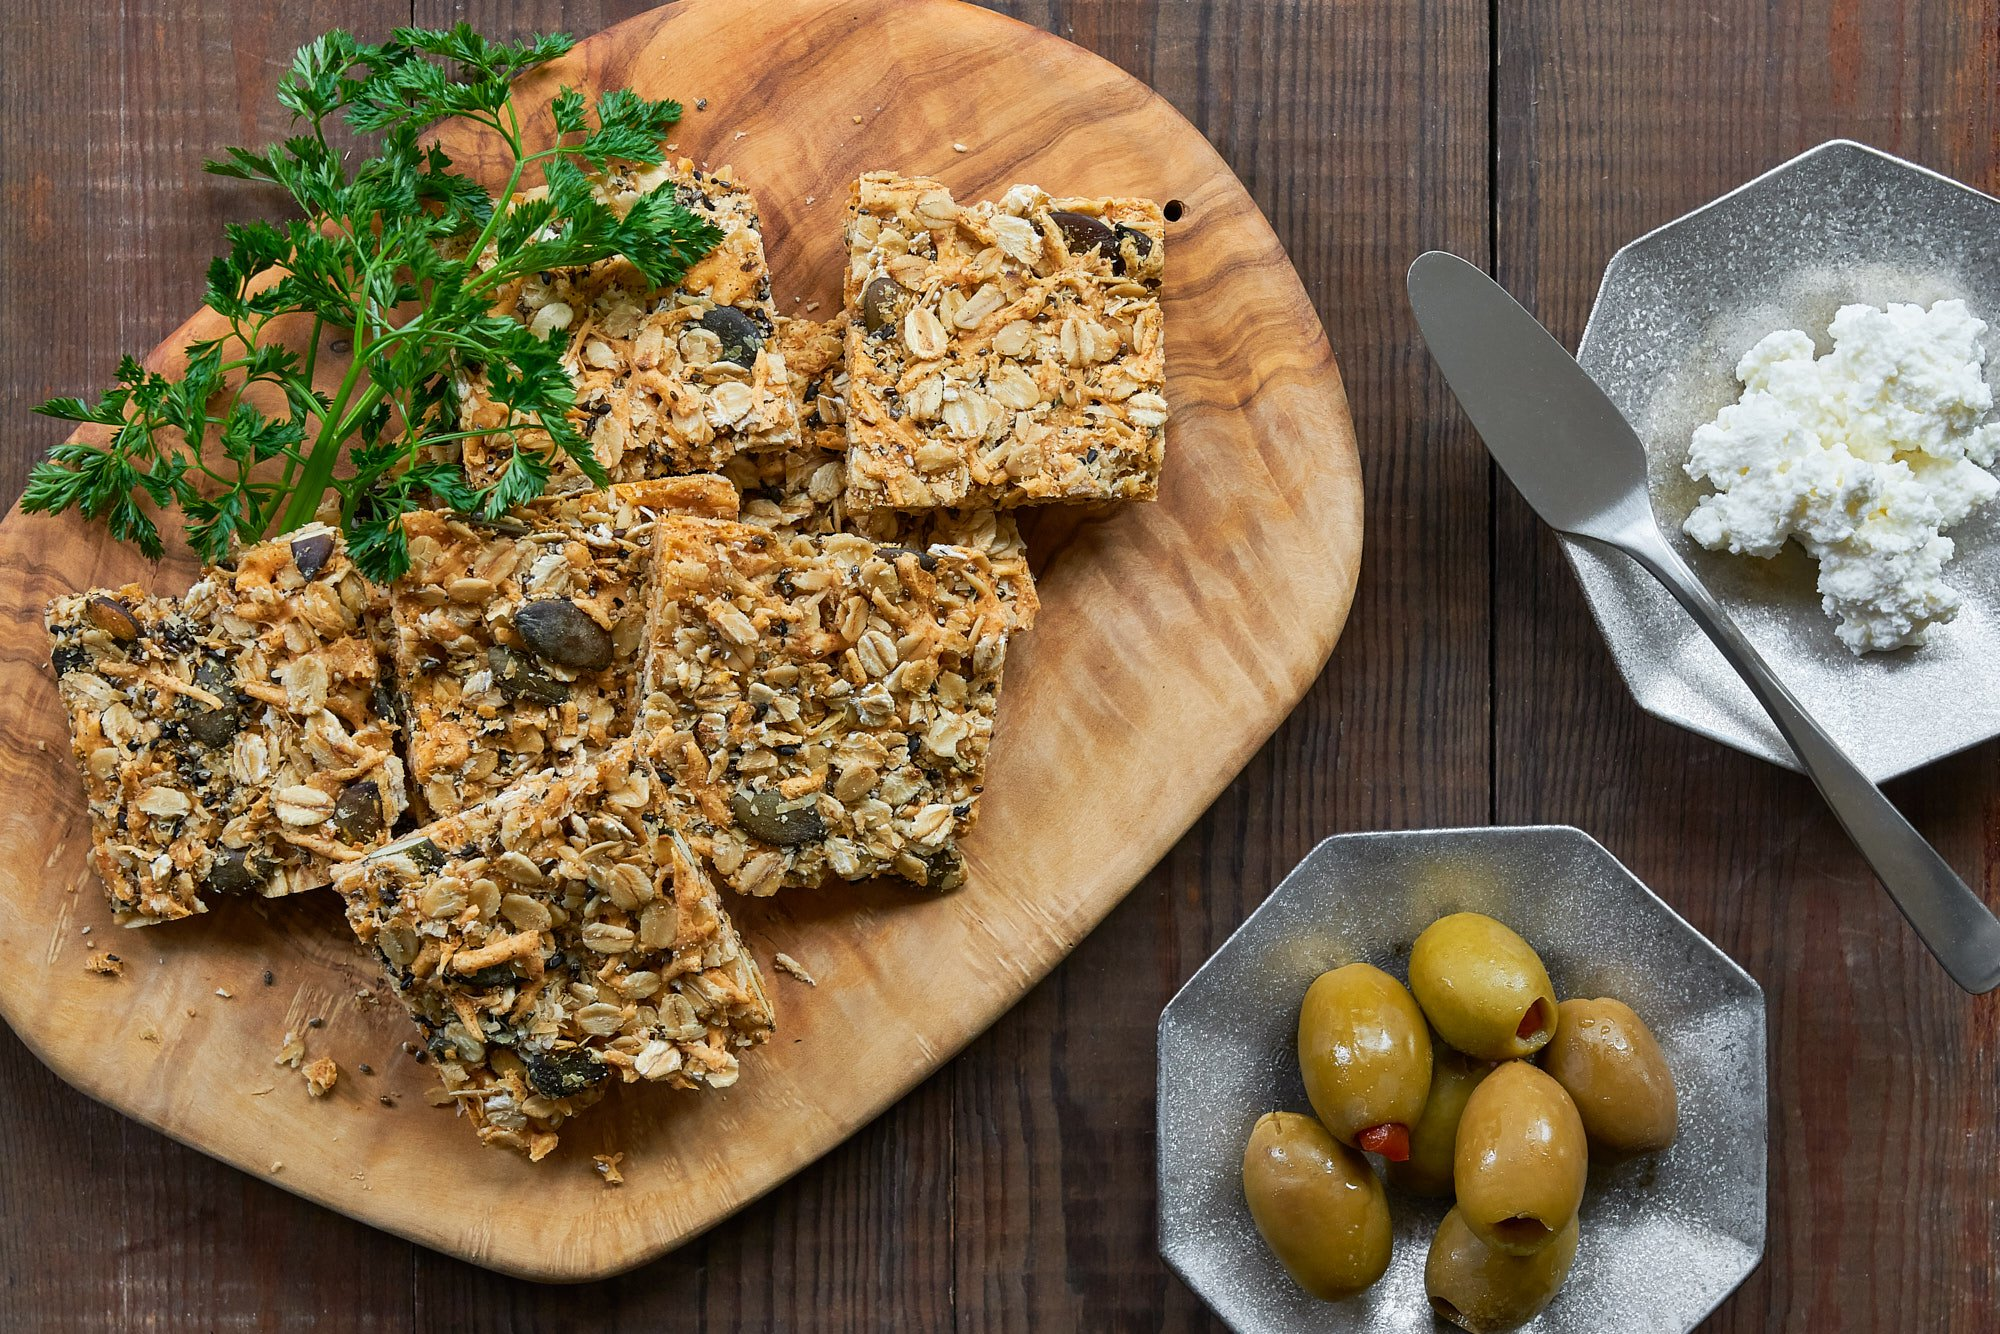 With loads of cheddar and parmesan holding together the oats, chia seeds, pumpkin seeds, and sesame seeds these crisp granola crackers are healthy and delicious.